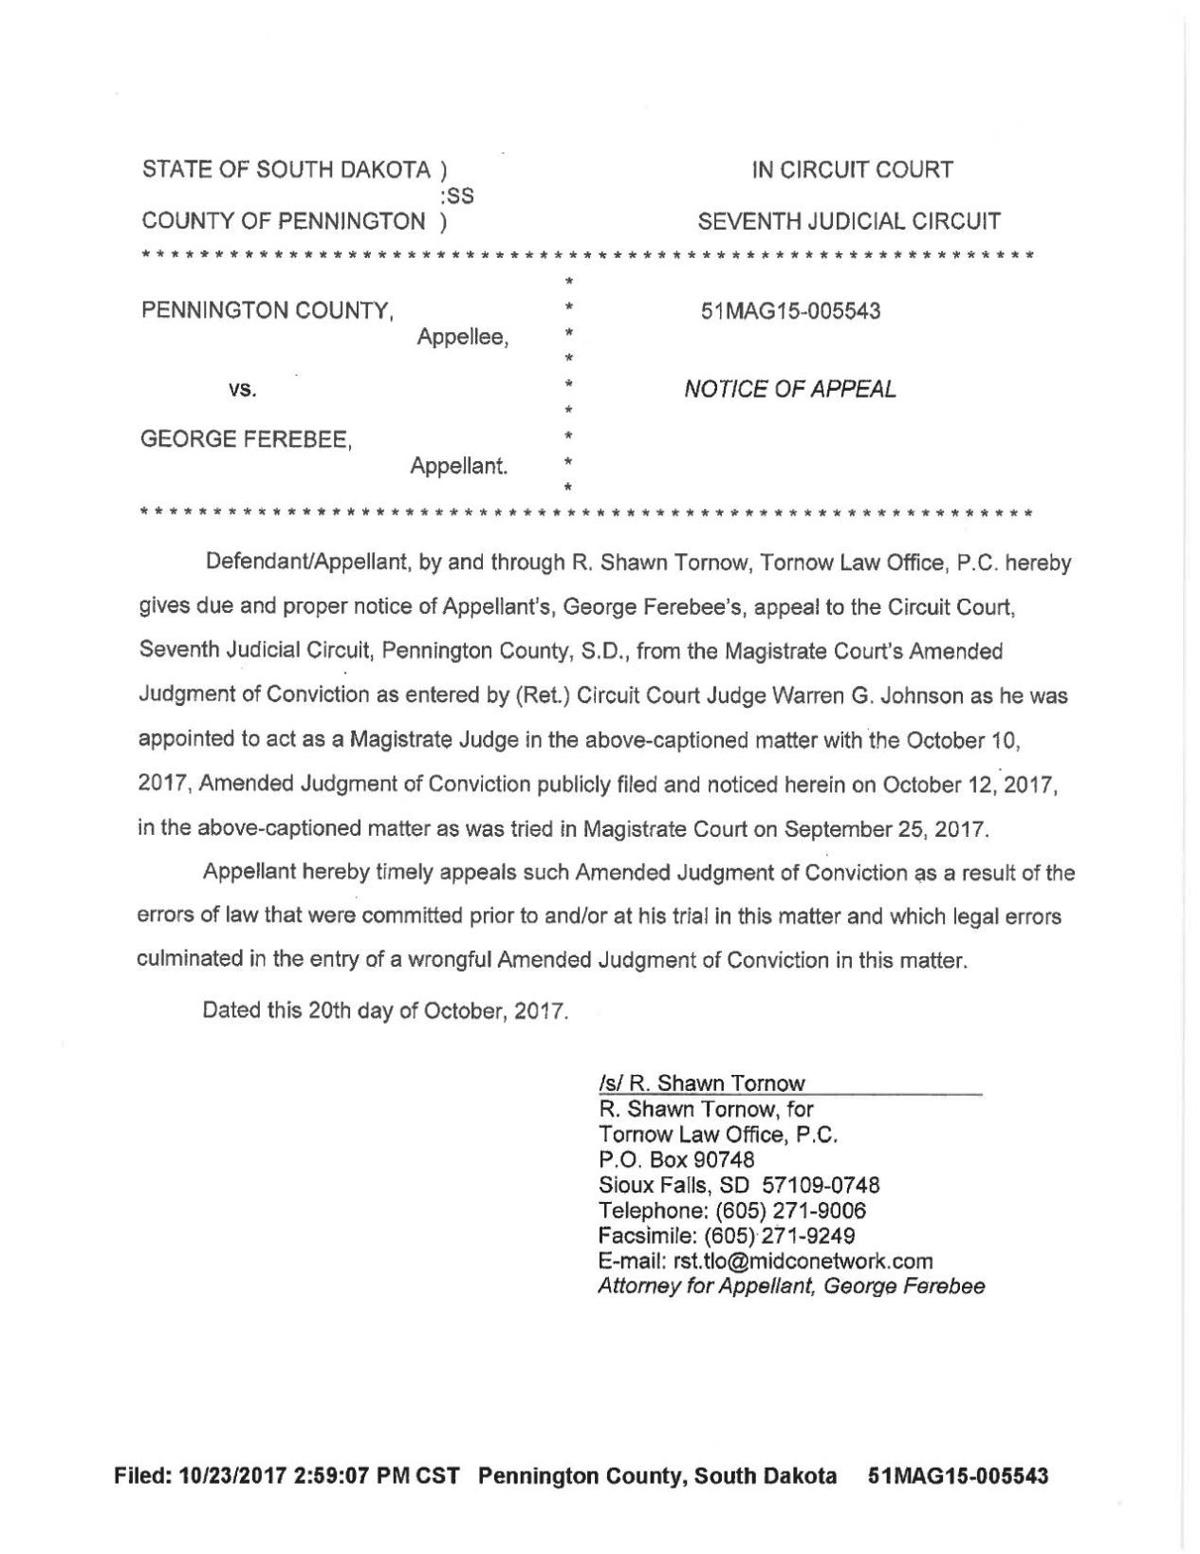 Pennington County v. George Ferebee - notice of appeal